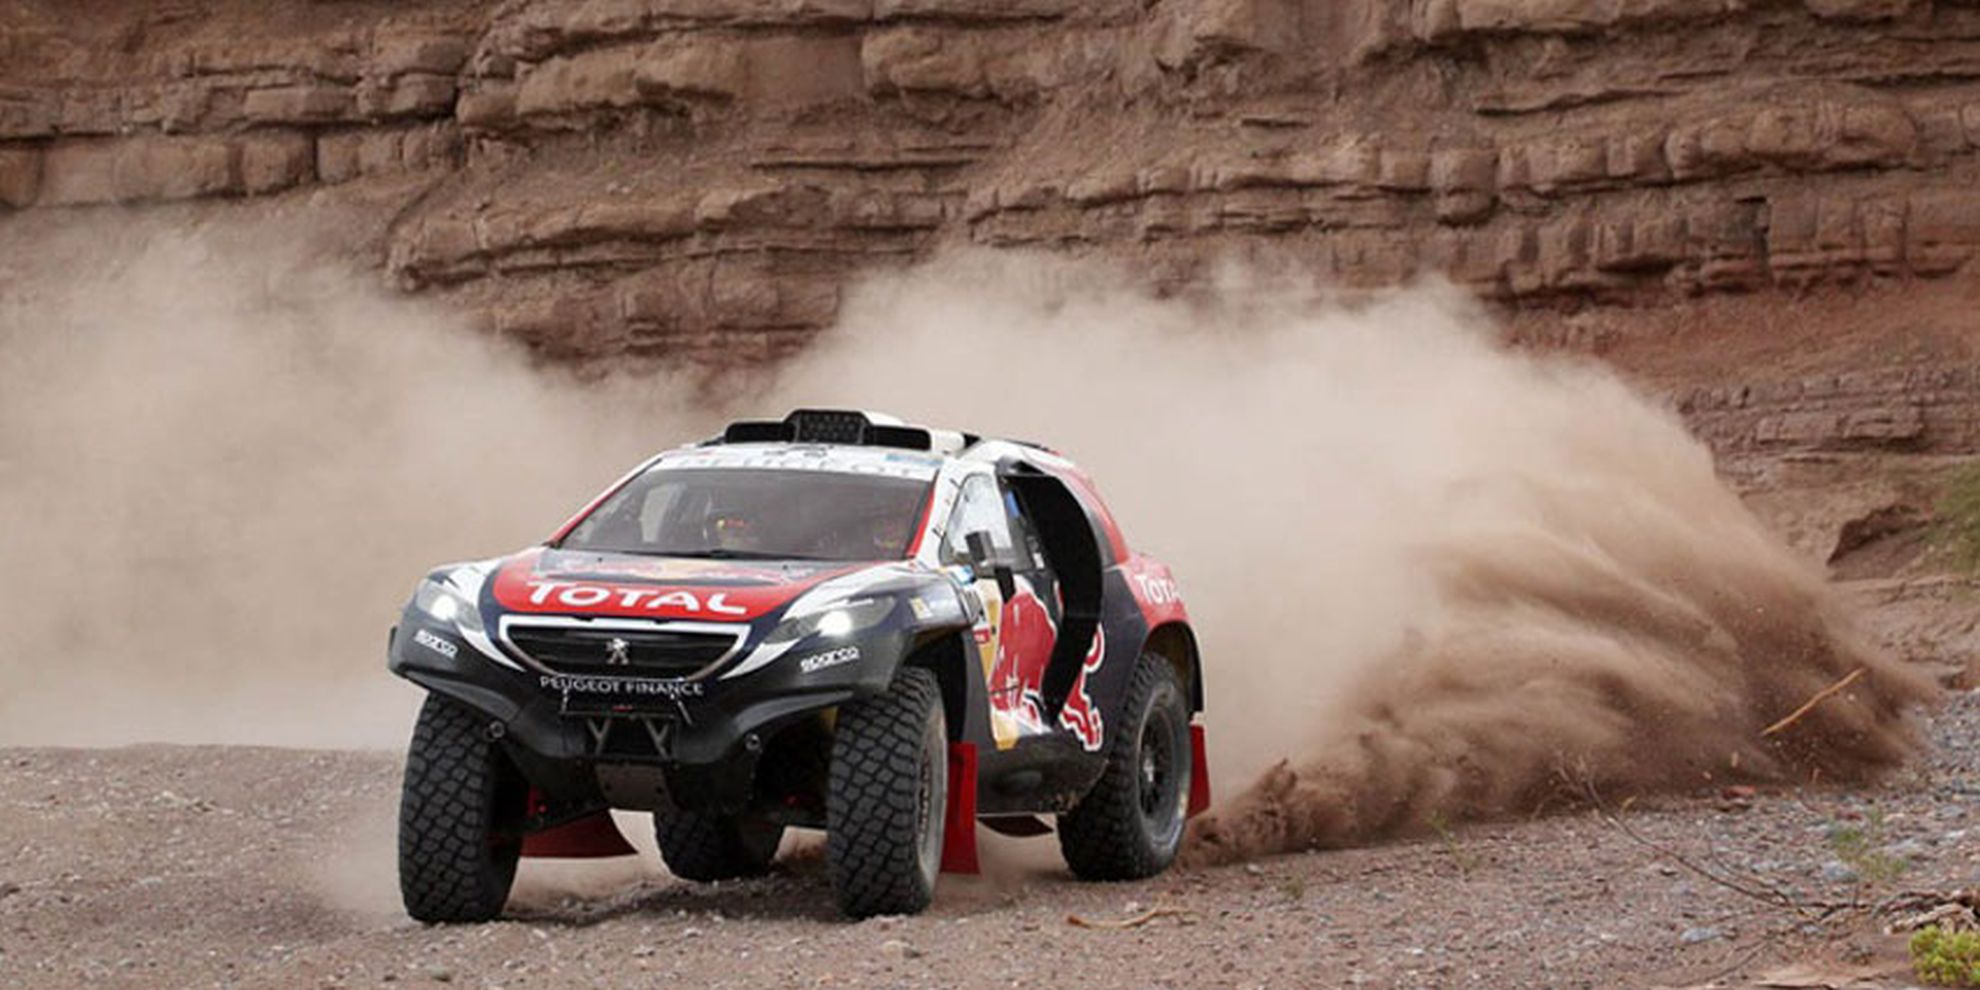 Peugeot-taking-on-Chinese-version-of-Dakar-Rally-to-get-ready-for-2016